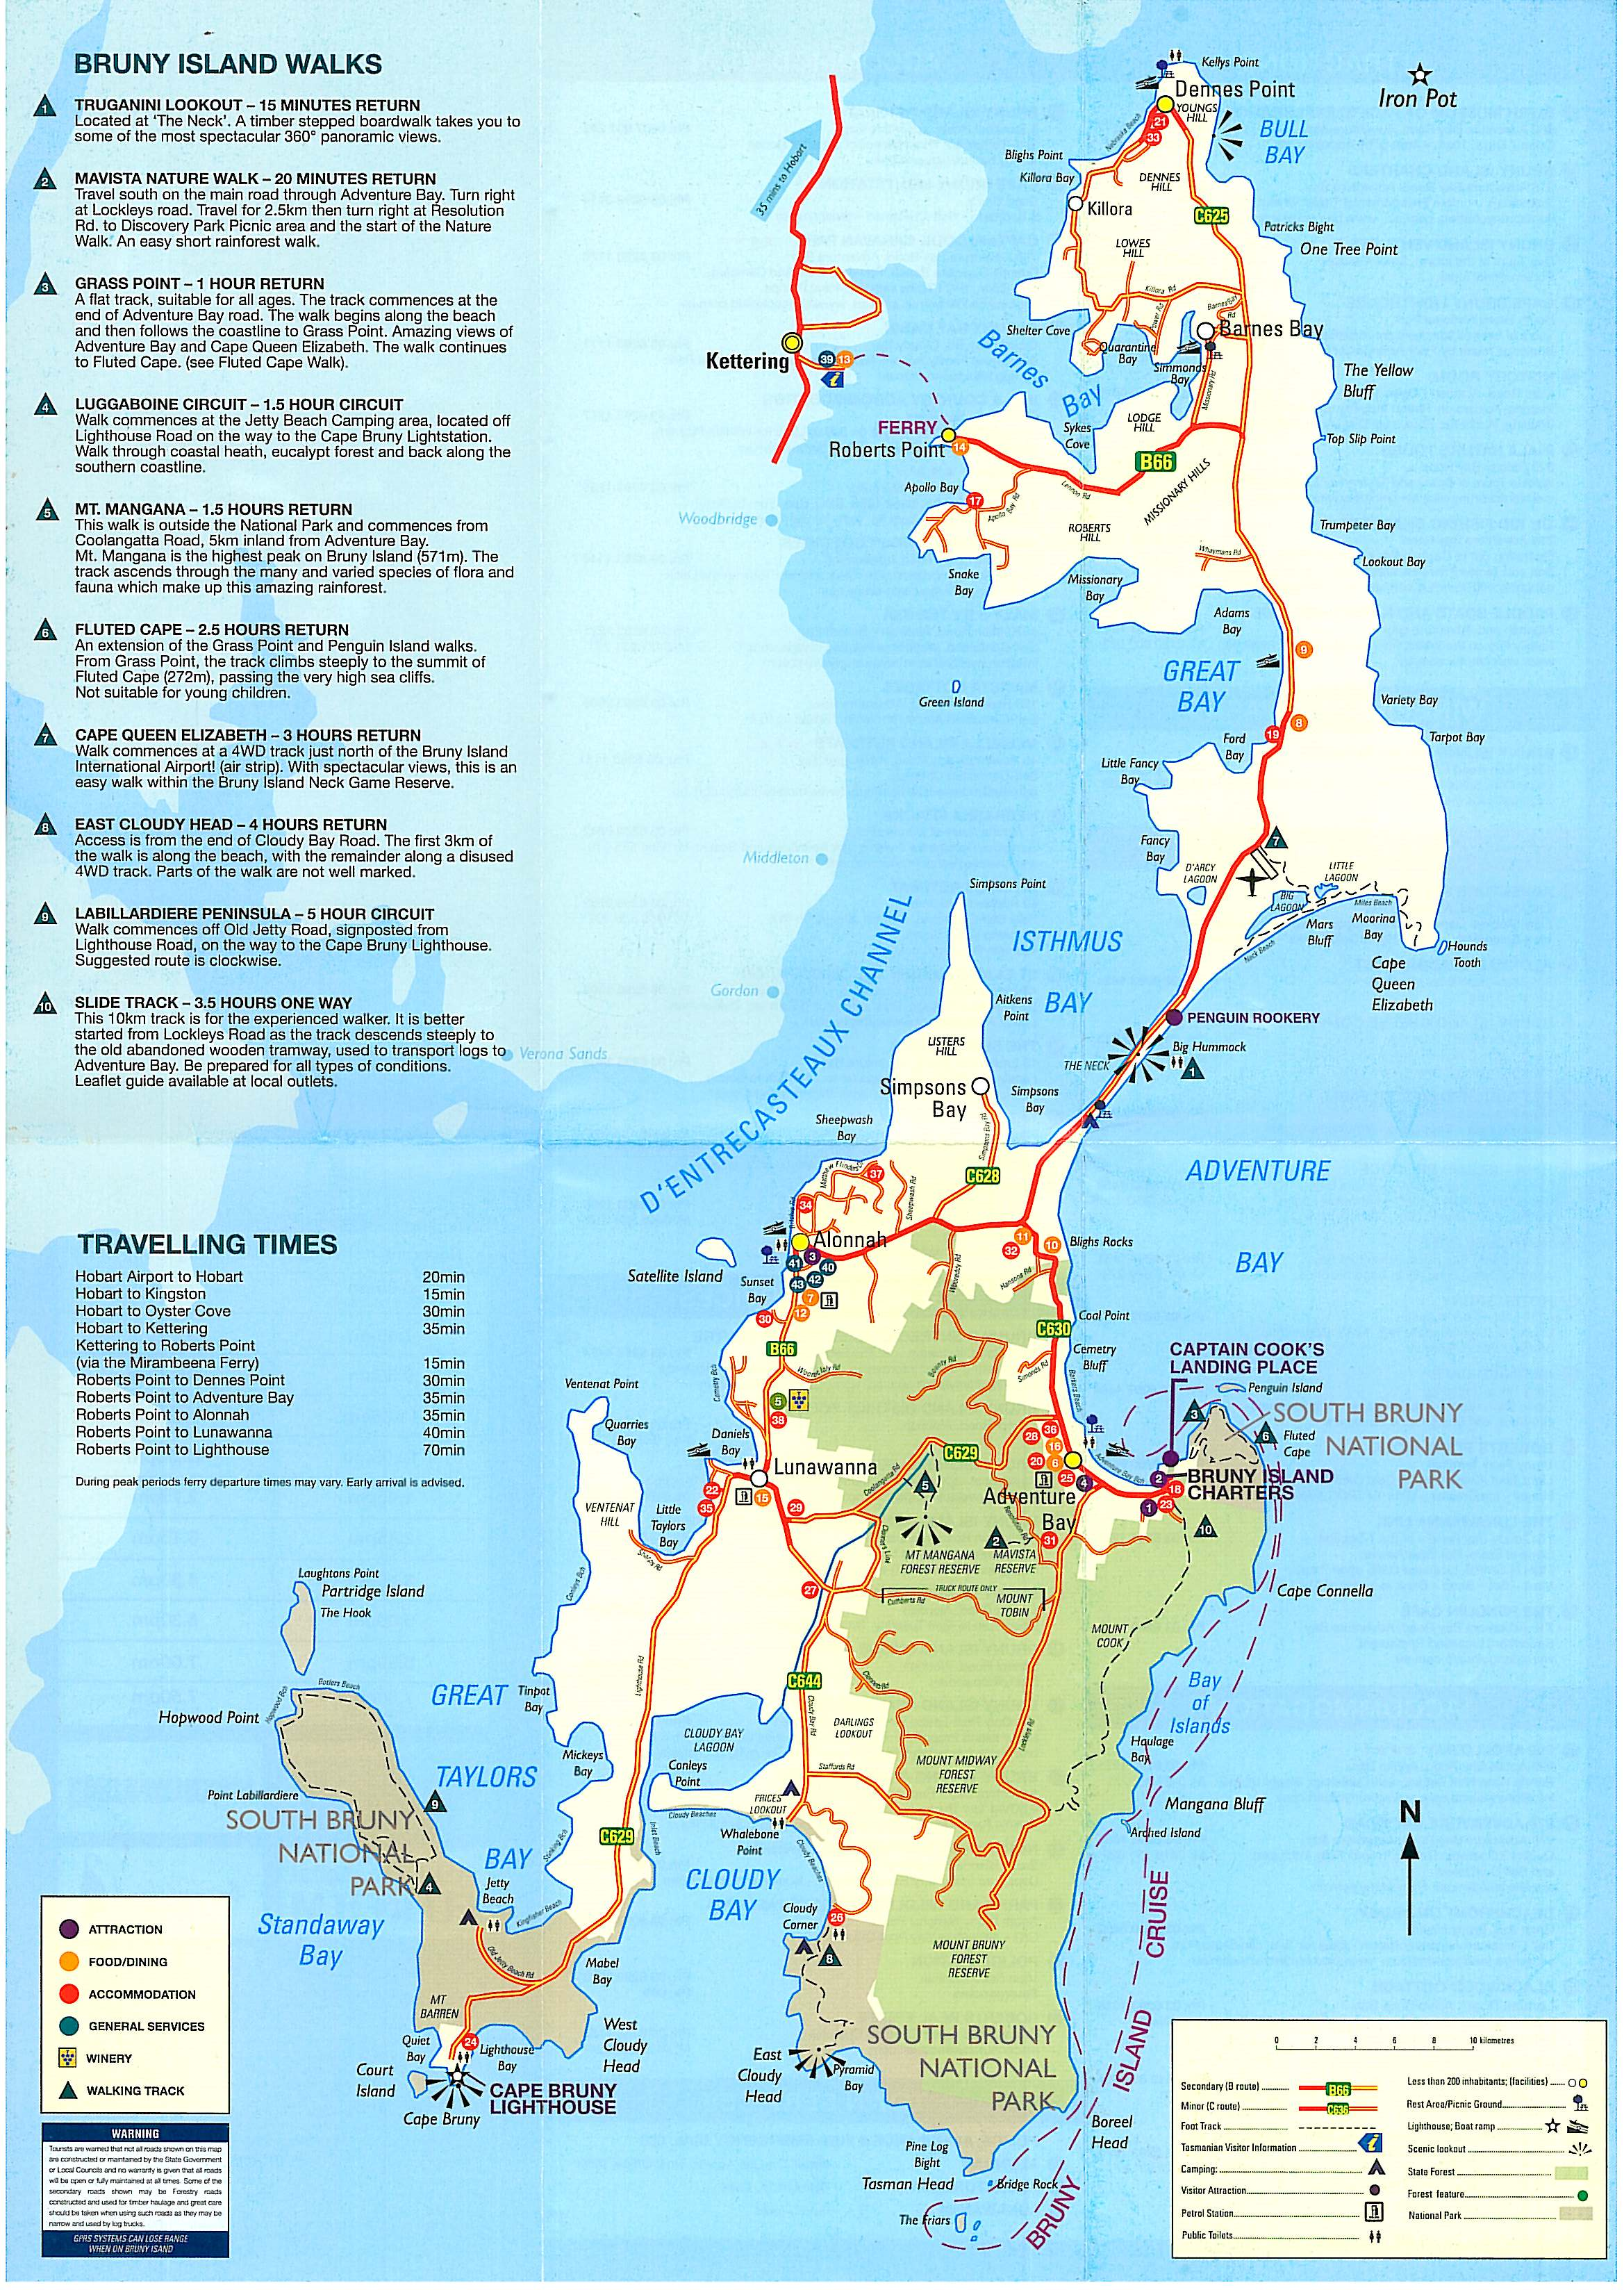 Bruny_tourist_map.jpg